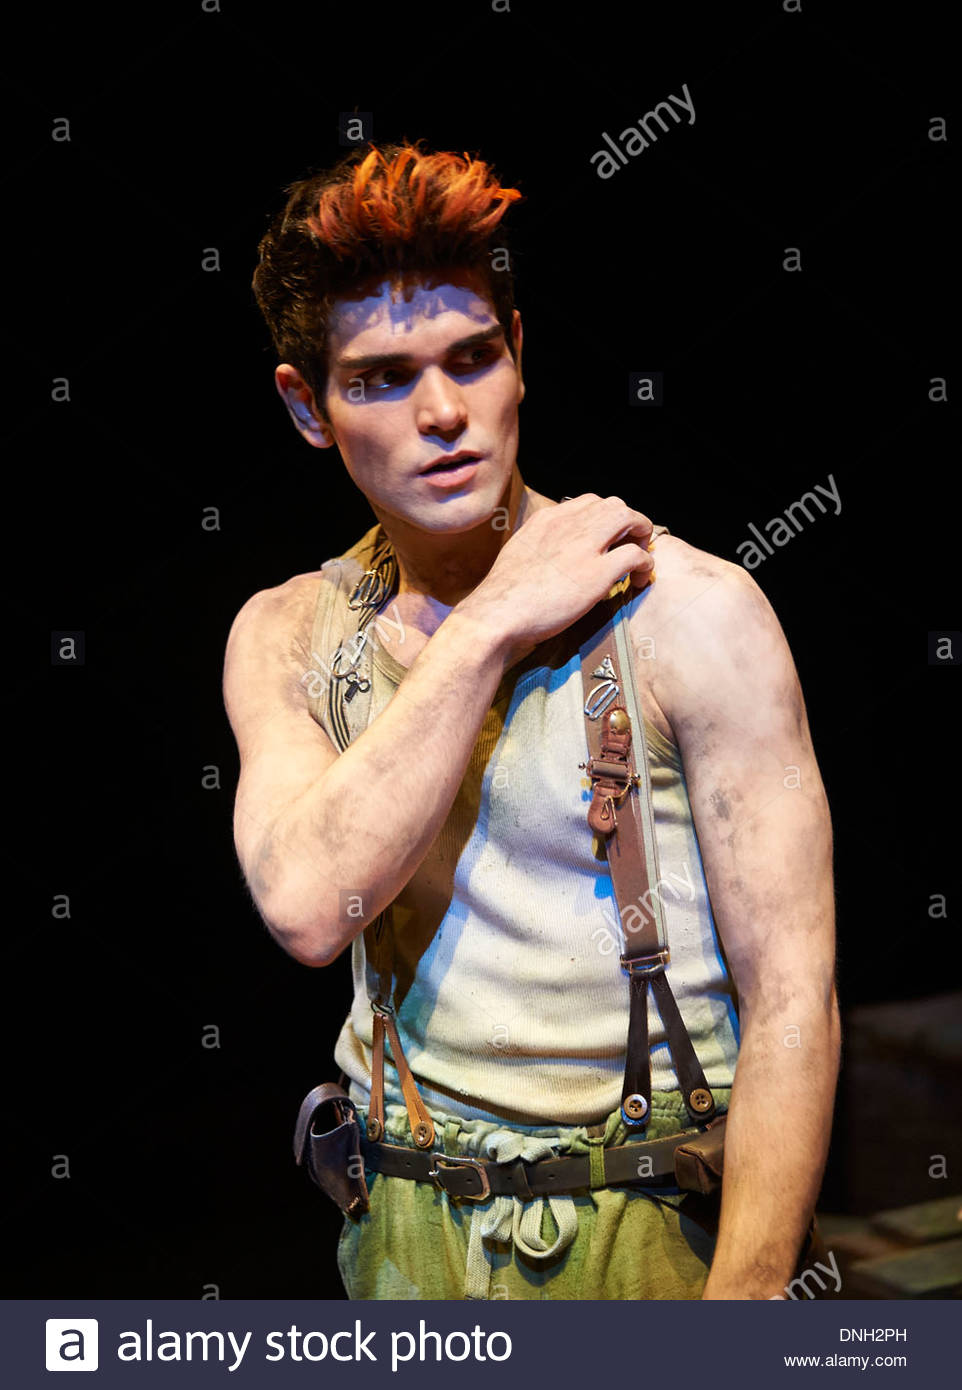 Wendy and Peter Pan by Ella Hickson, adapted from the novel by J M Barrie. A Royal Shakespeare Company Production directed by Jonathan Mundy. With Sam Swann as Peter. Opens at The Royal Shakespeare Theatre , Stratford Upon Avon on 18/12/13 - Stock Image